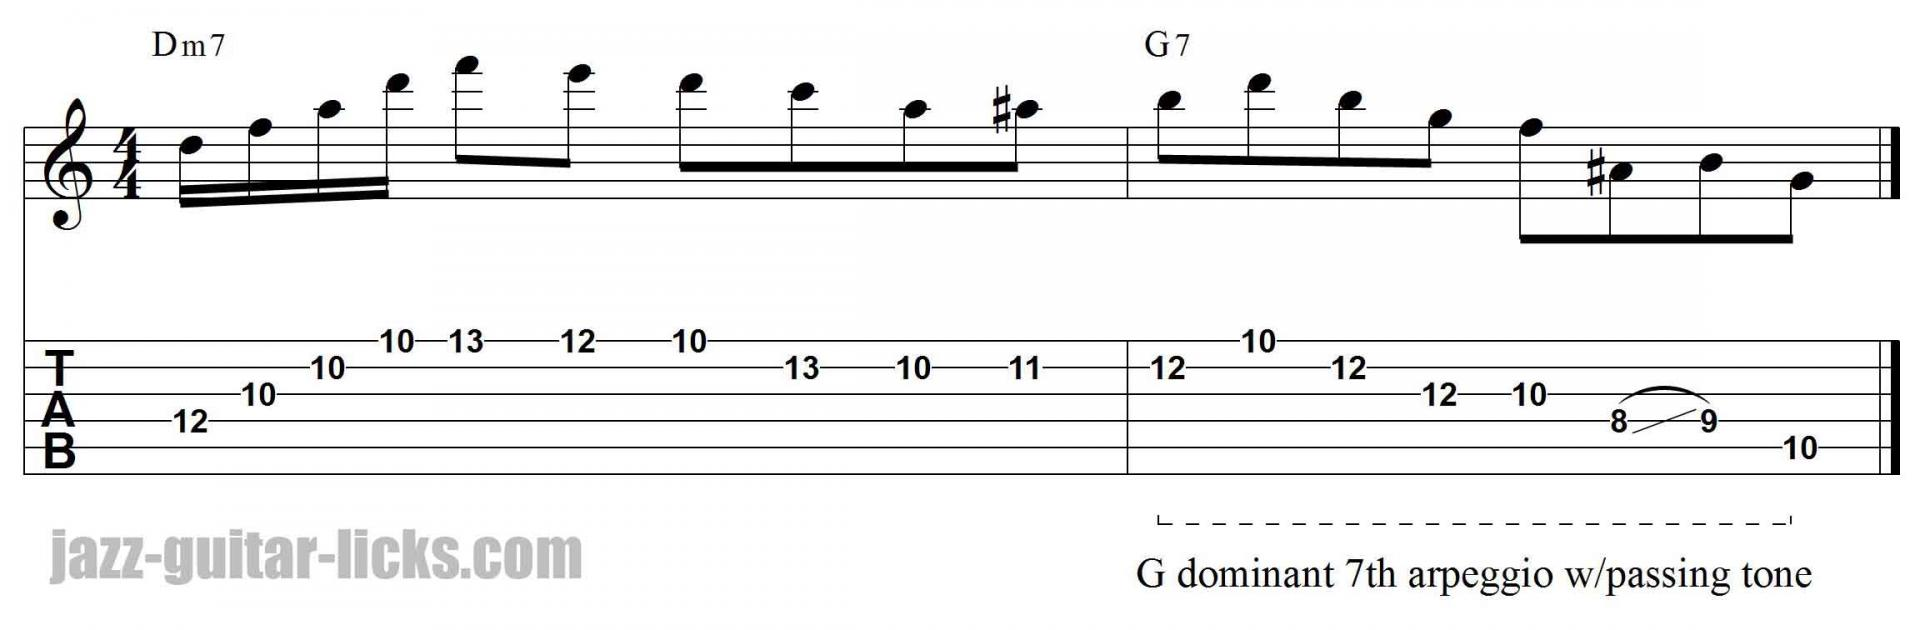 Dominant 7th arpeggio jazz guitar lick with tab